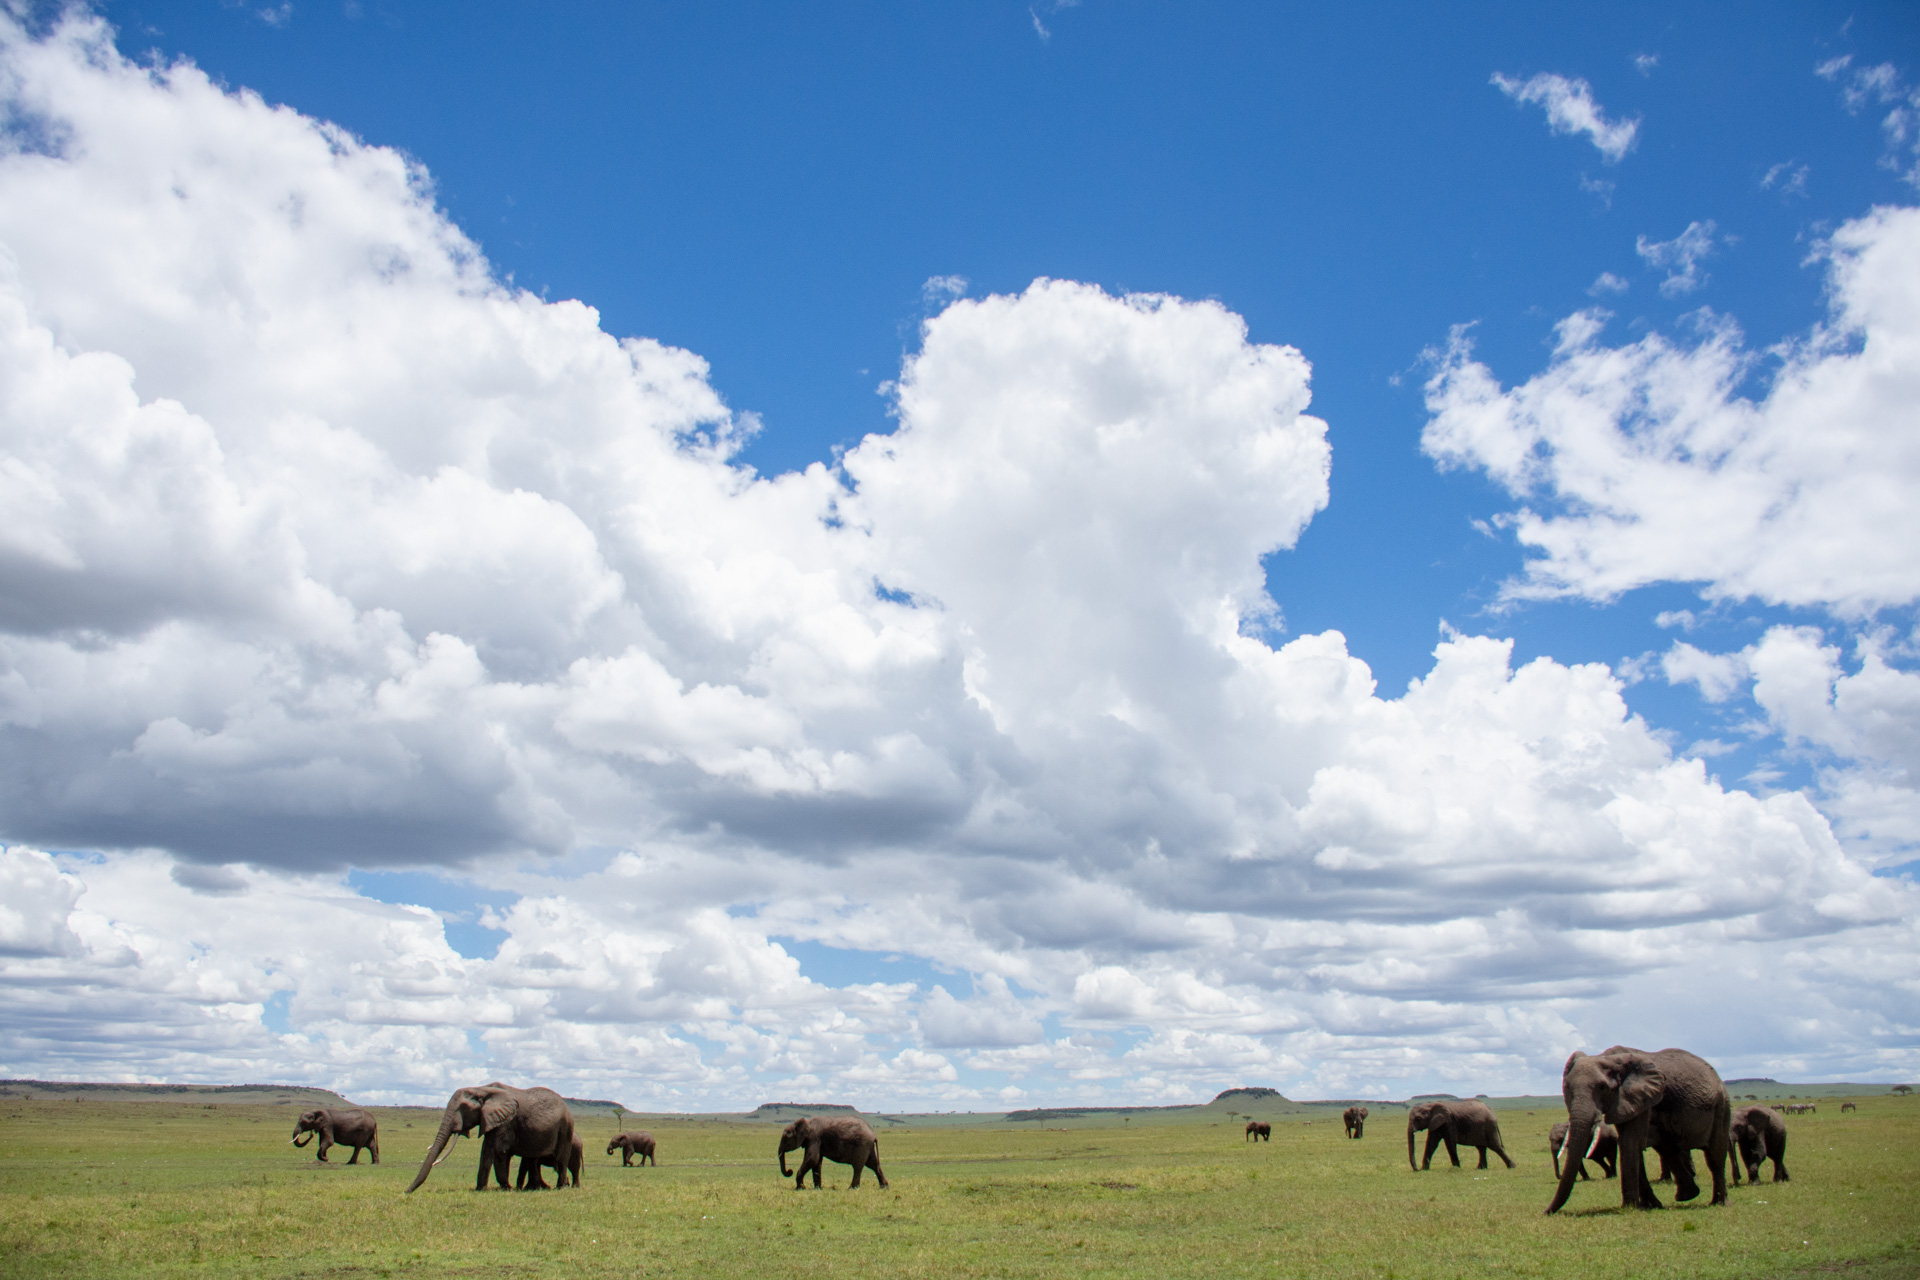 Elephants wide angle